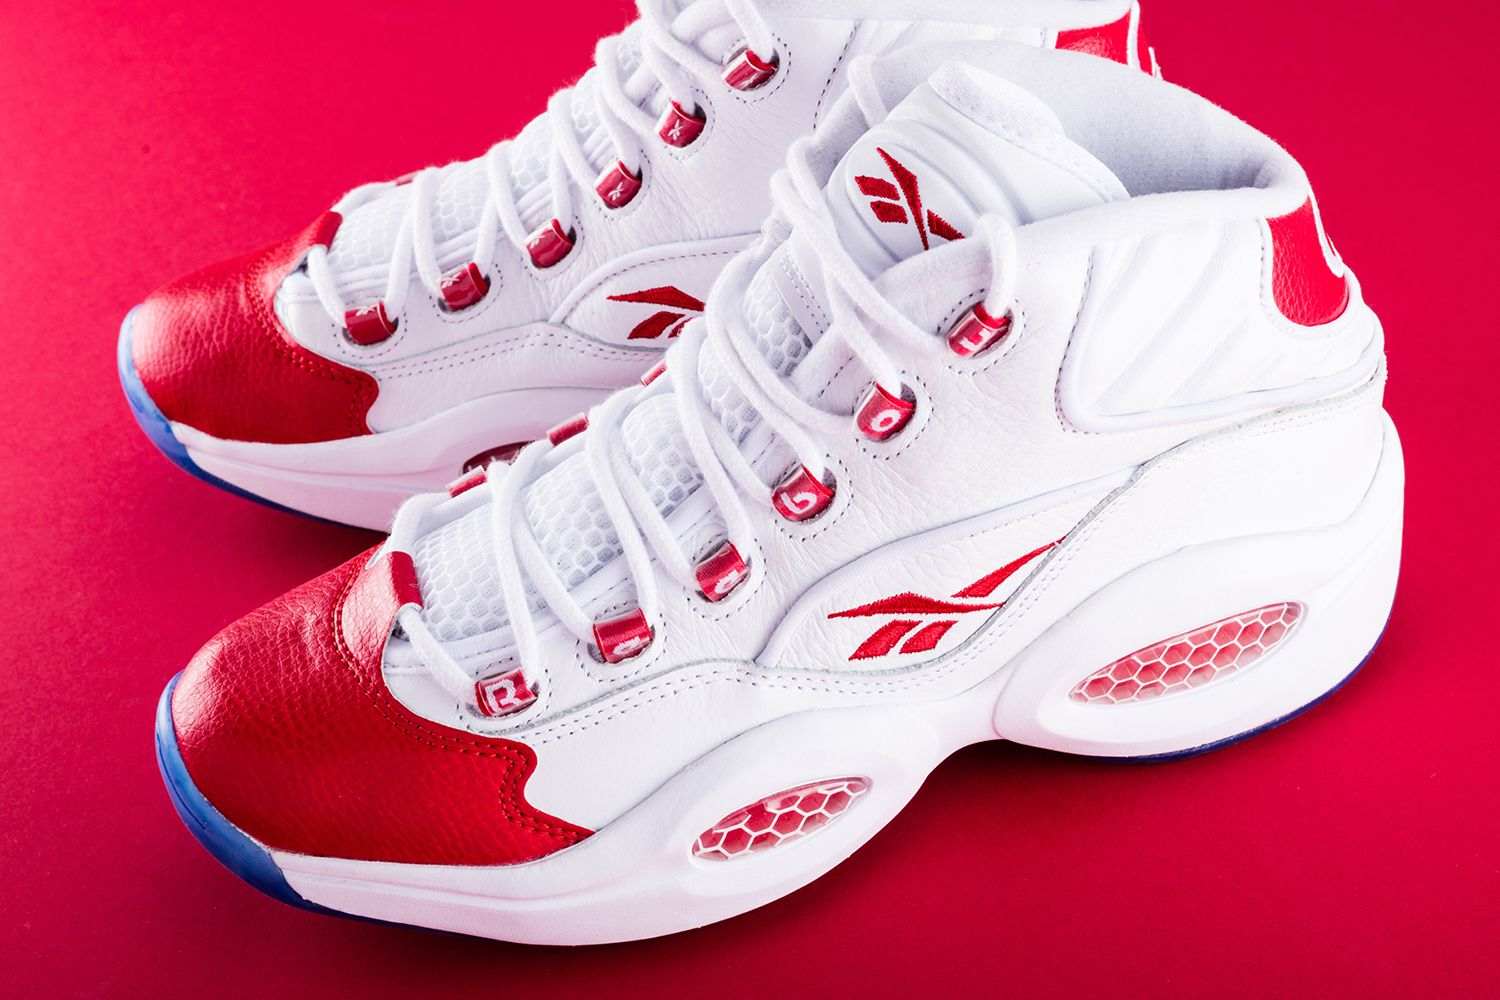 4c2bf8bbebf4 Reebok will be dropping yet another OG version of Allen Iverson s Question  Mid.